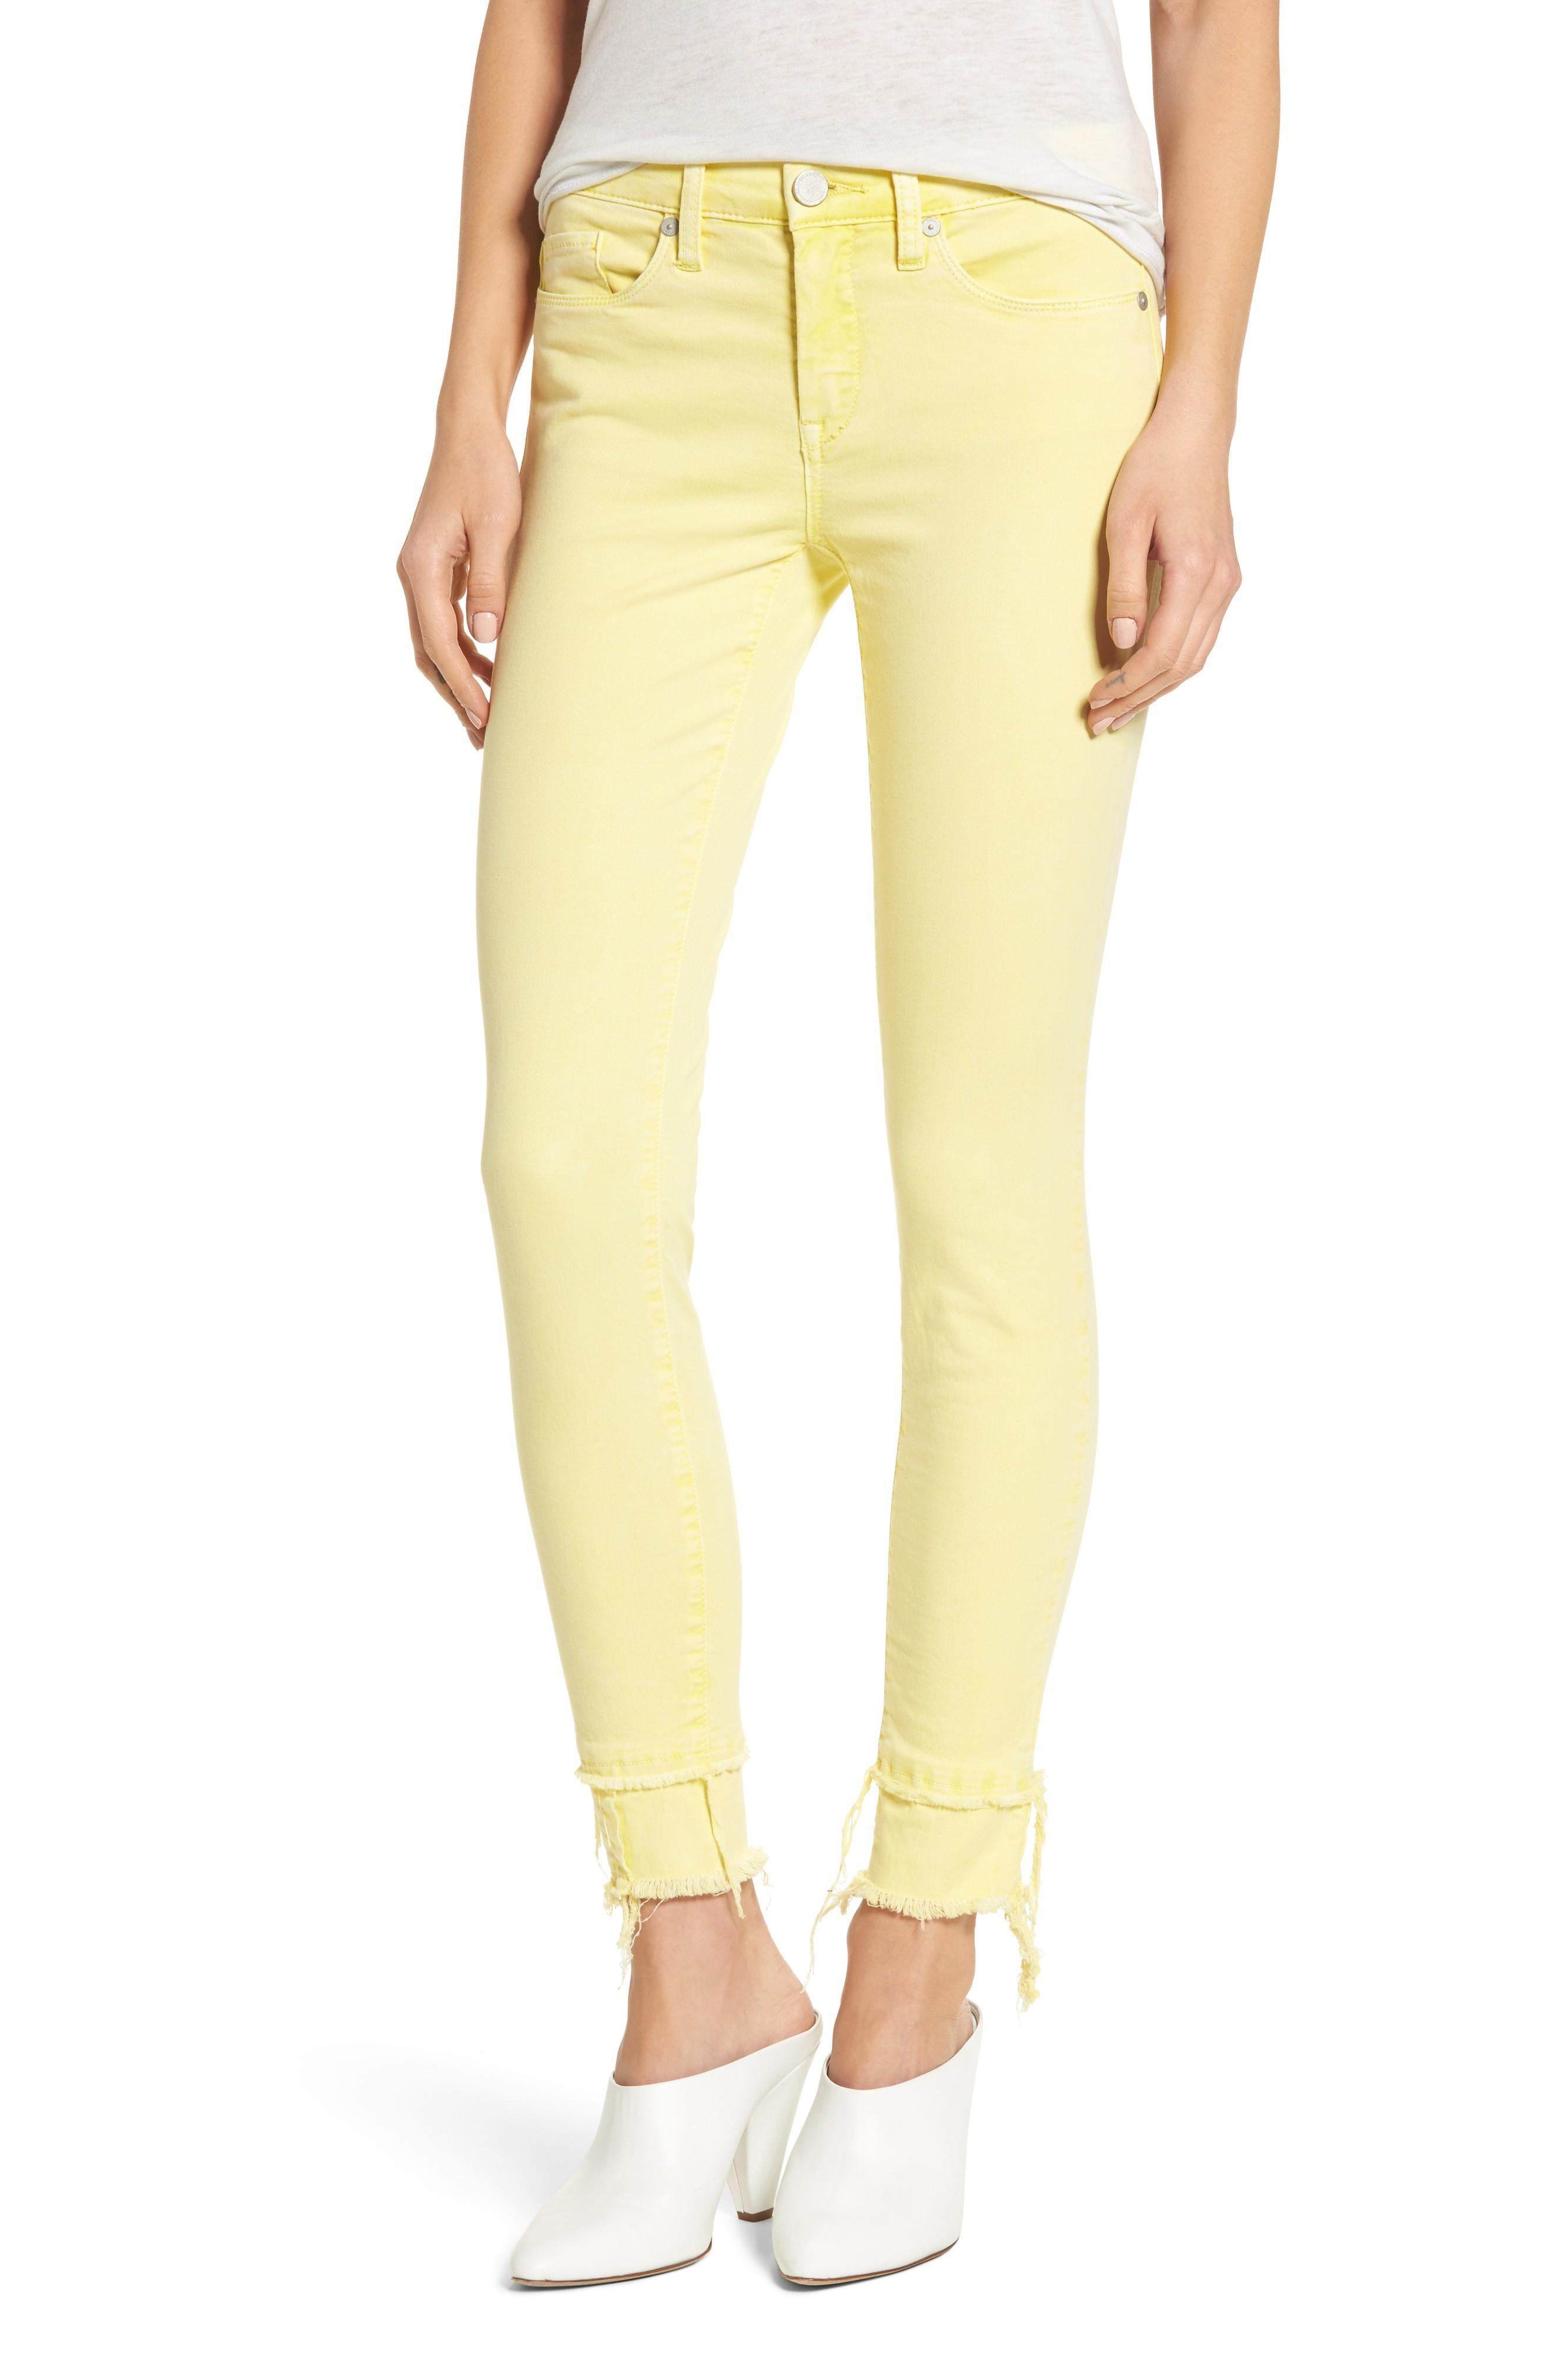 Blanknyc The Reade Classic Crop Raw Edge Double Hem Jeans In Sunny Spot Yellow